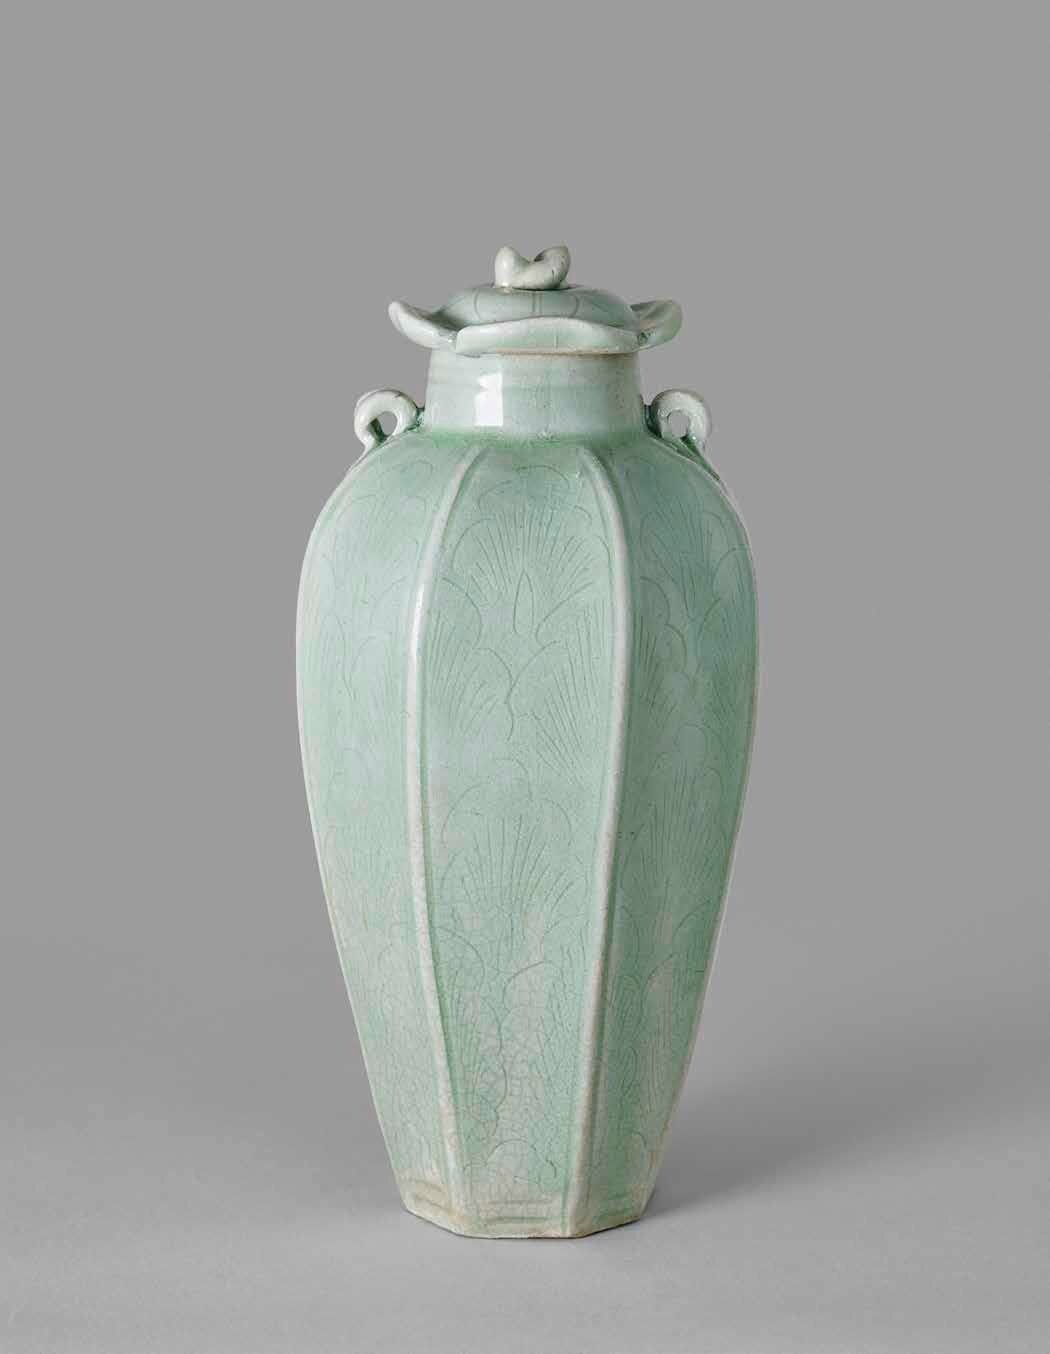 Early Longquan Yue-Type Octagonal Jar and Cover, Northern Song Dynasty 960-1127 A